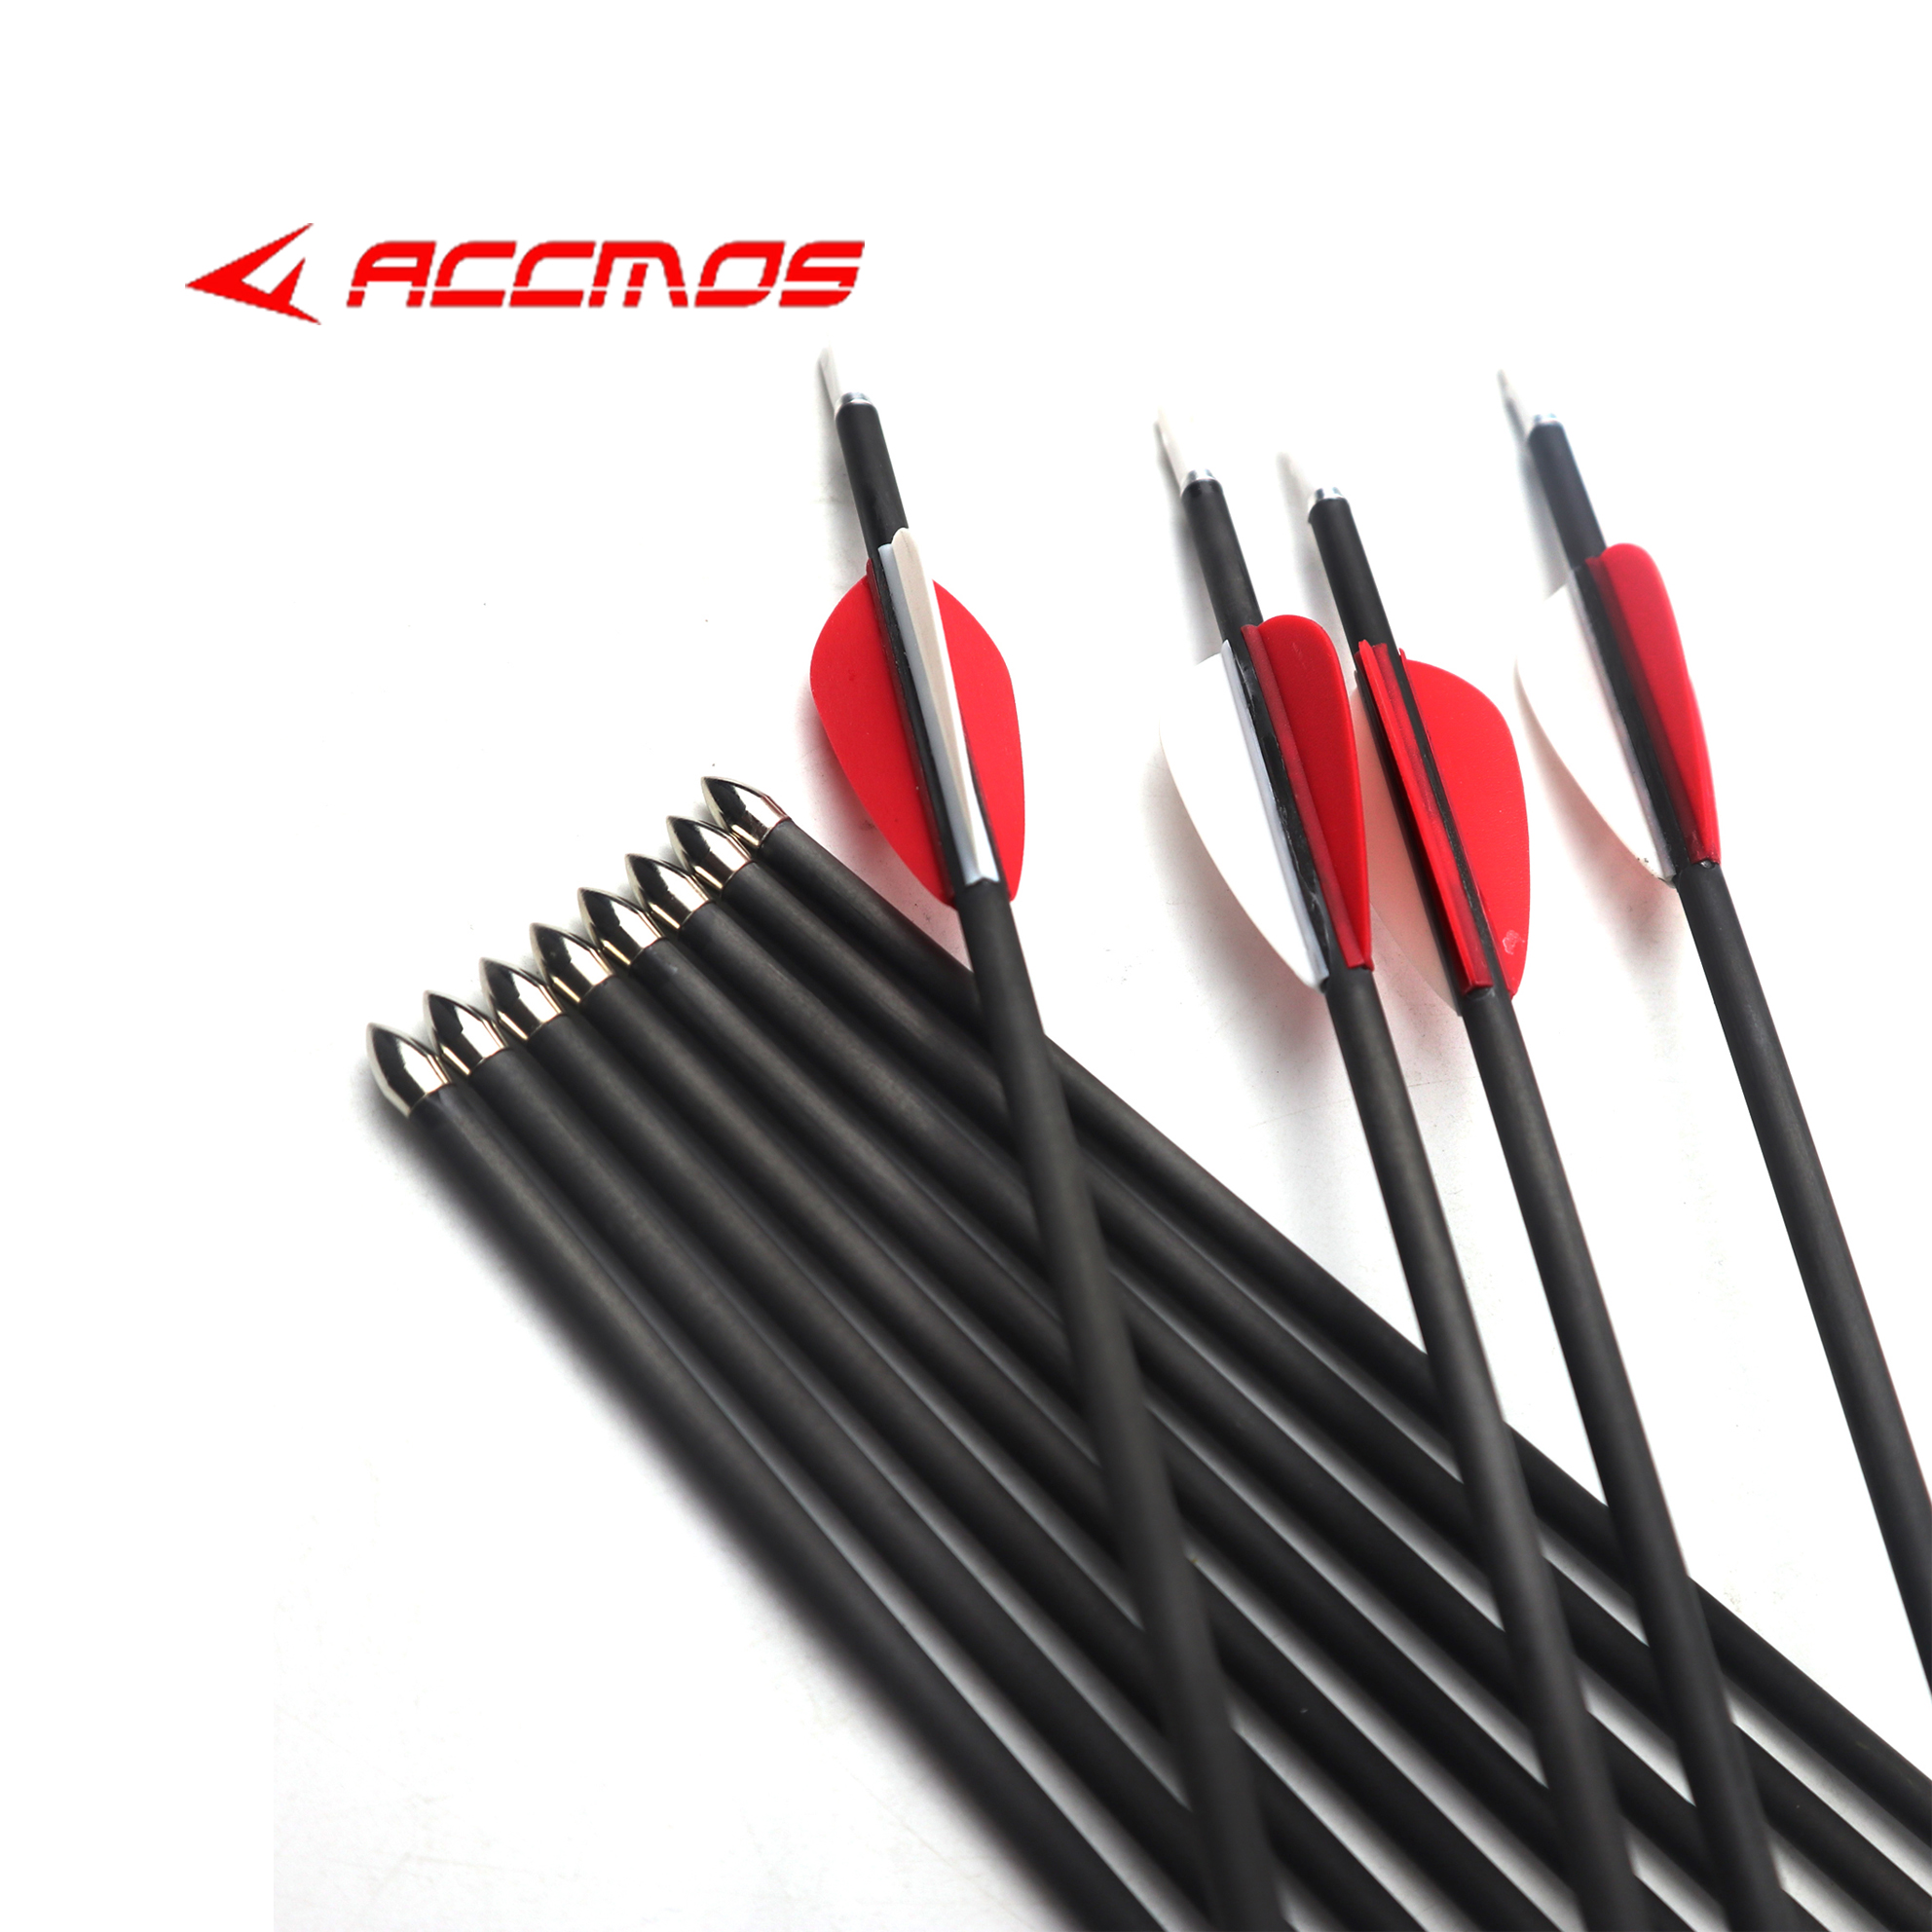 12pc New Hot Pure Carbon Arrow Spine 1000 1100 1300 1500 1800 Pure Carbon Arrow ID 4.2 Mm Archery Recurve Bow Hunting Shoot